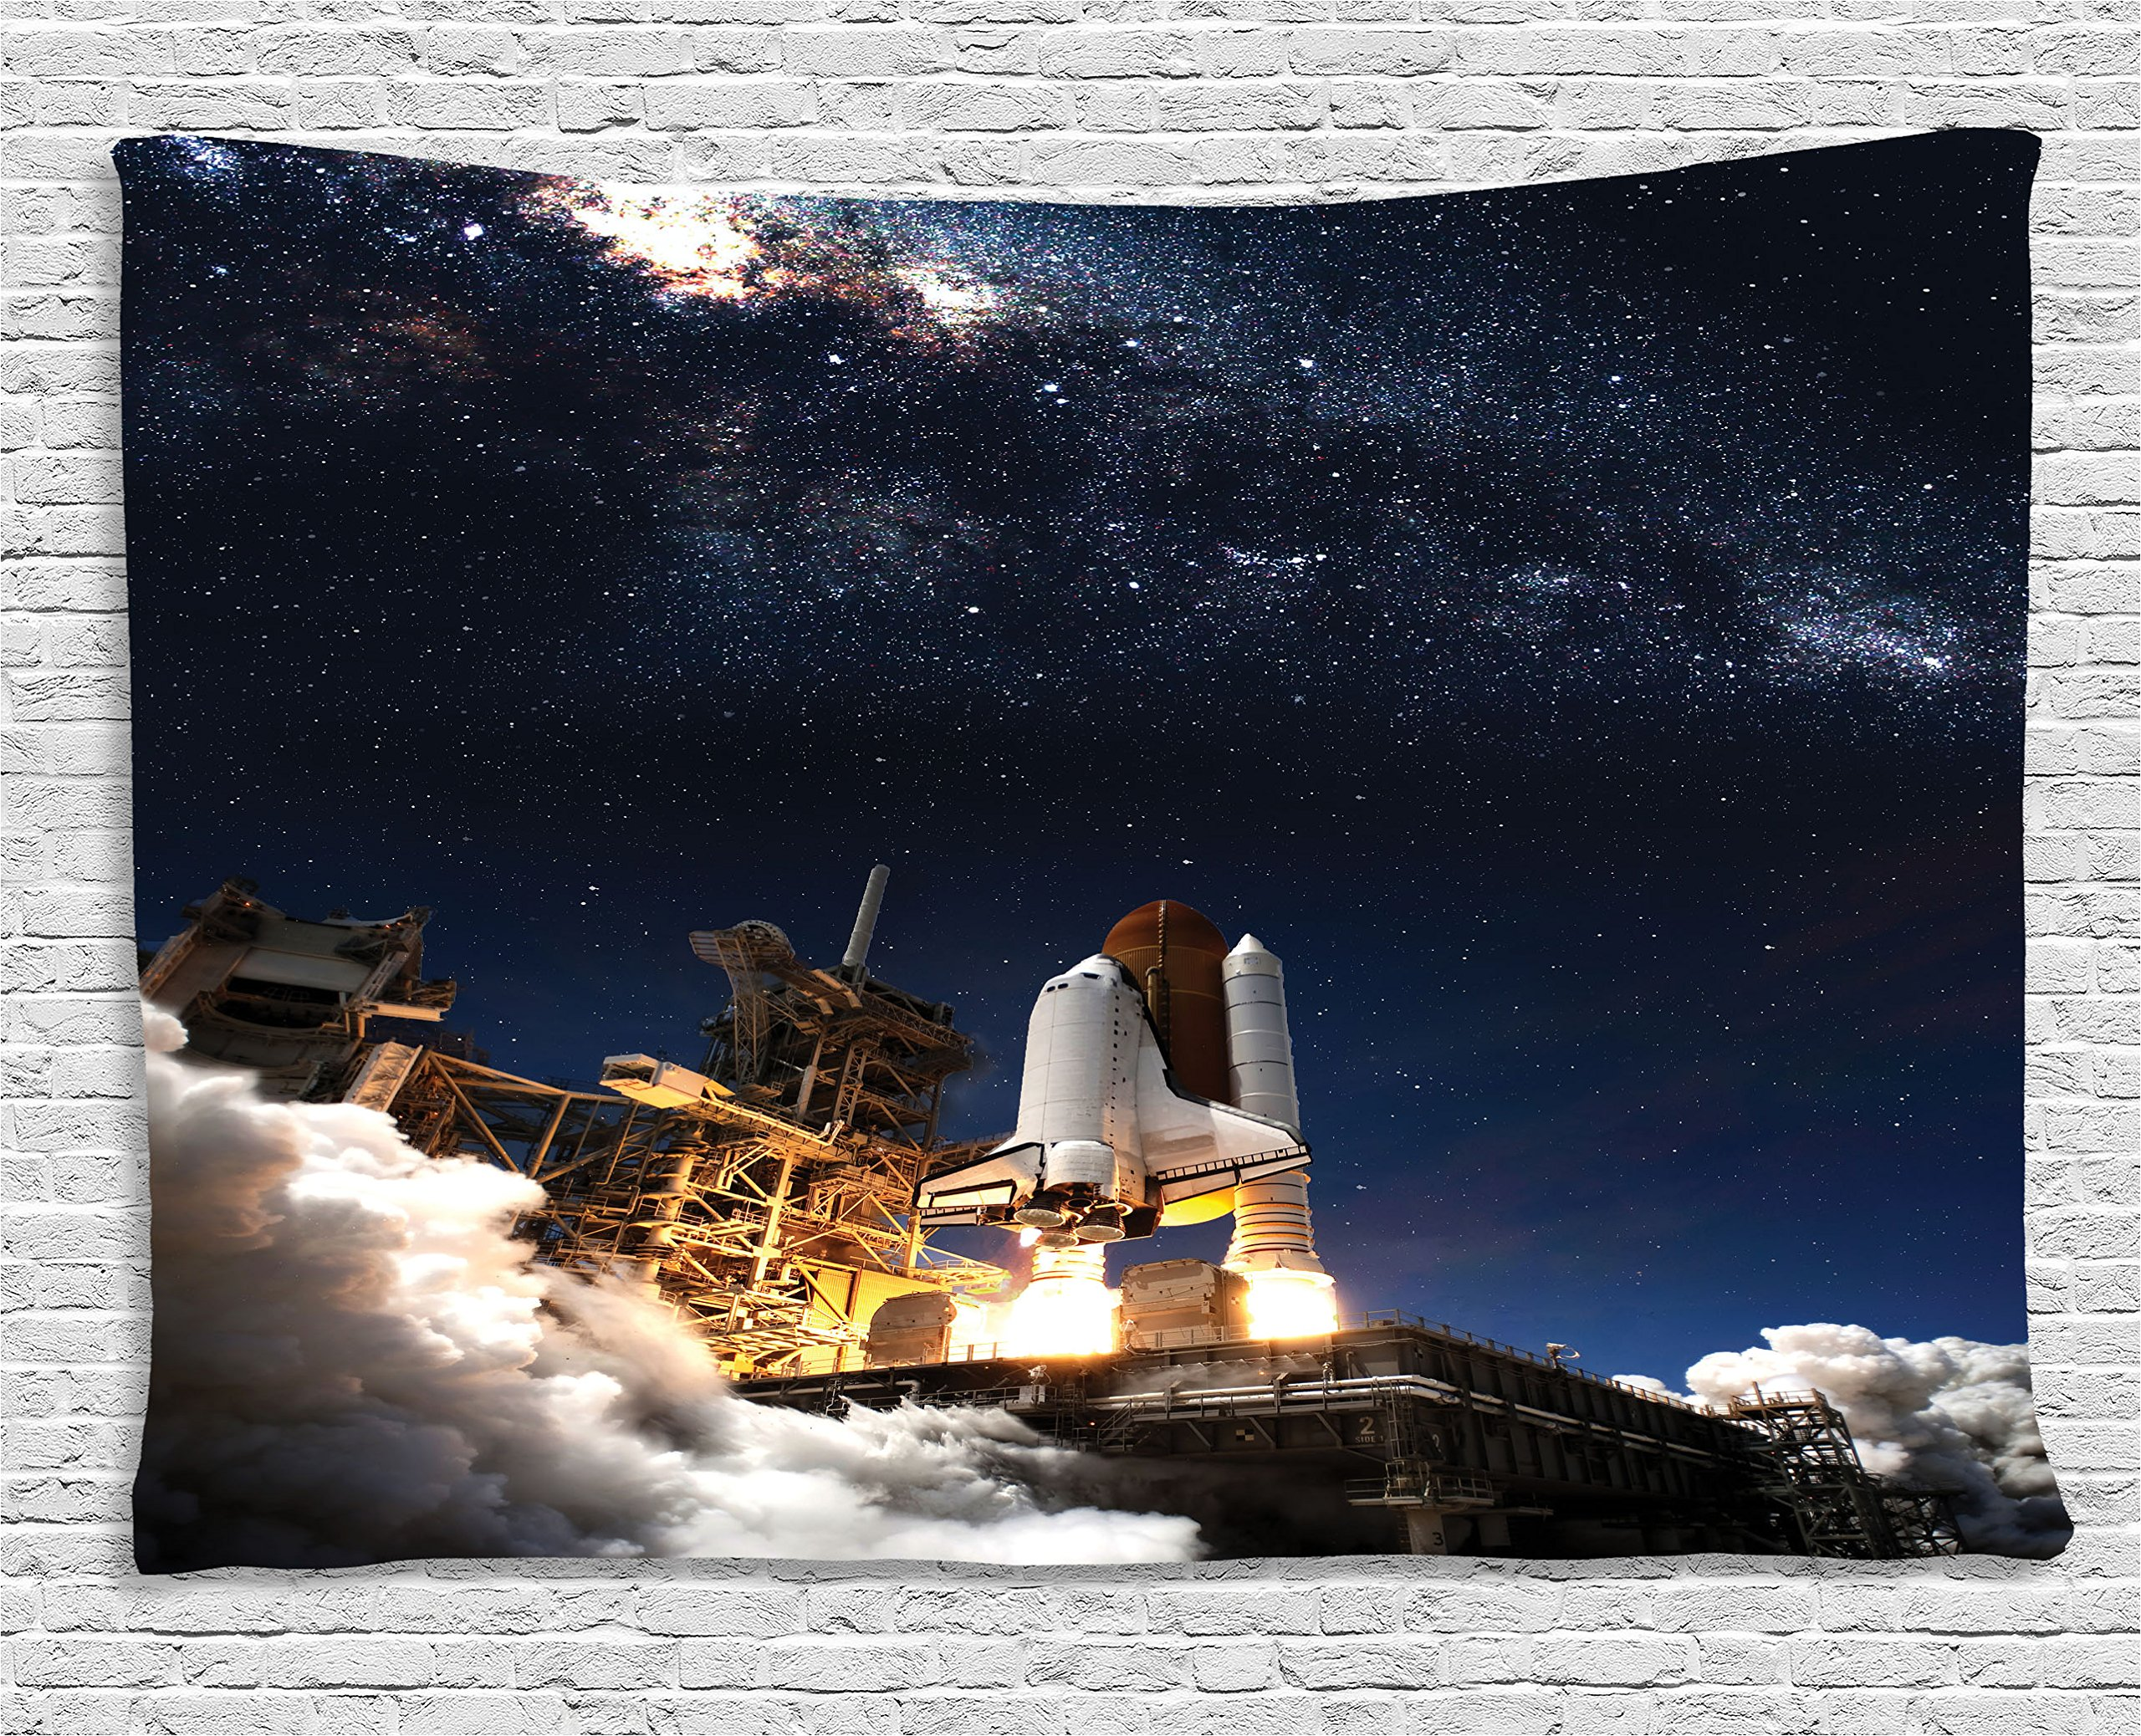 Ambesonne Galaxy Tapestry Wall Hanging, Space Shuttle on Take Off Discovery Mission to Explore Galaxy Spaceship Solar Adventure, Bedroom Living Room Dorm Decor, 60 W X 40 L inches, Blue White